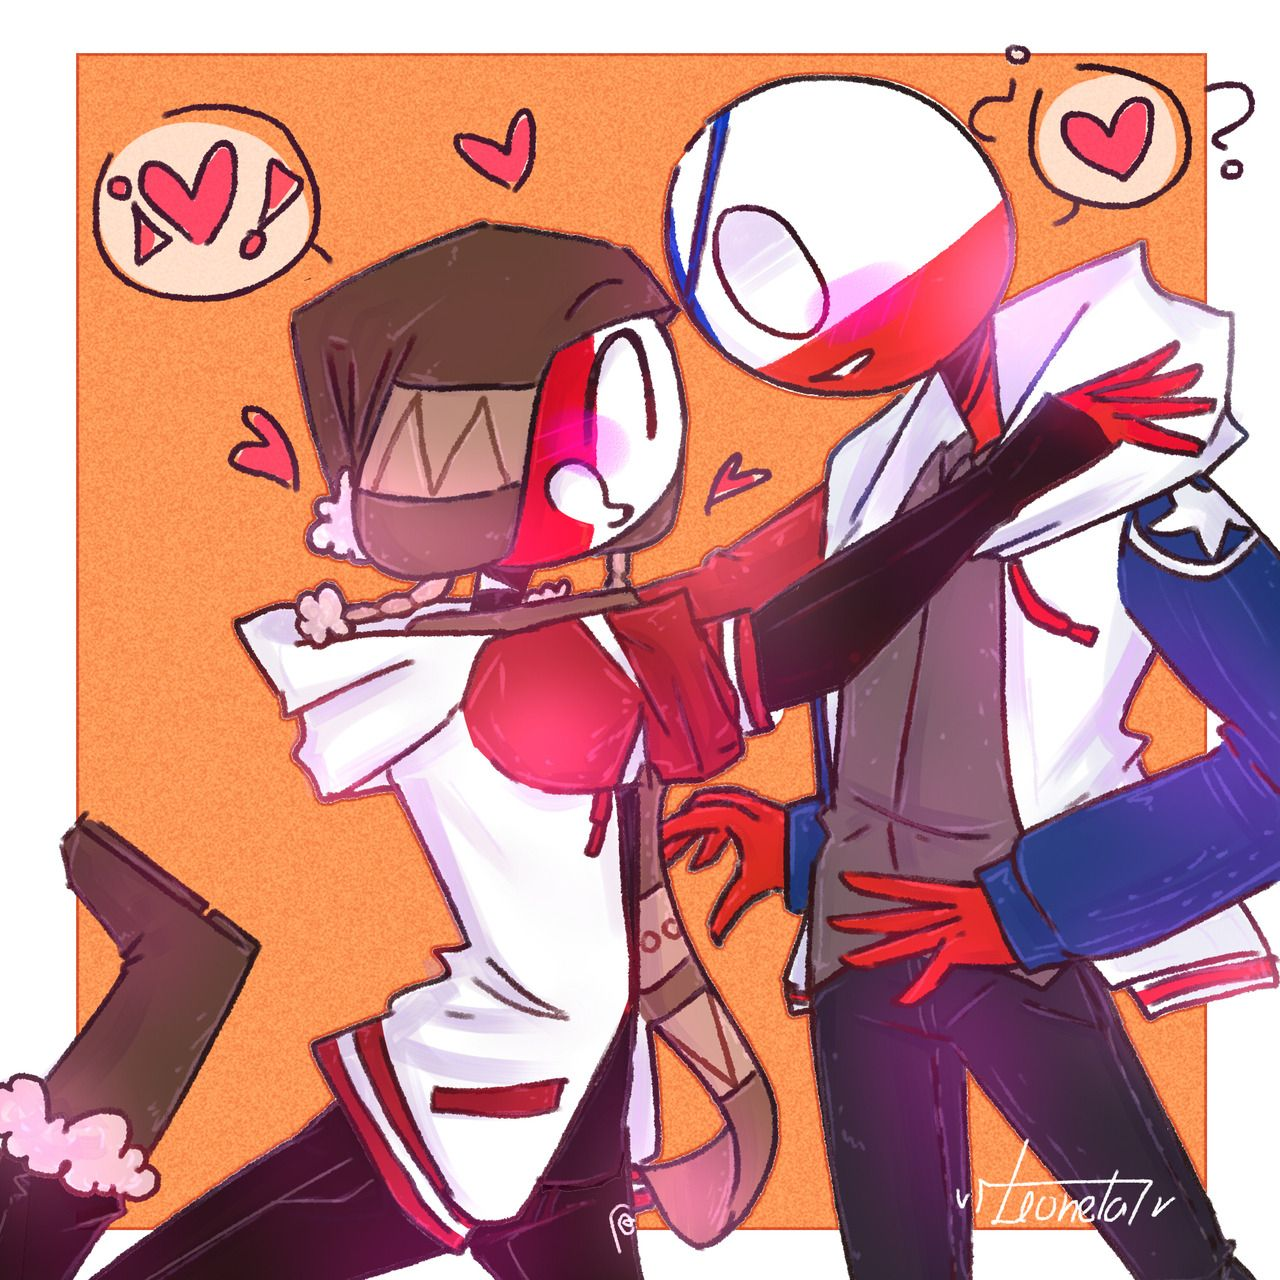 Chile X Peru Peru Countryhumans By Queendrawing Tumblr Country Art Anime Country Memes